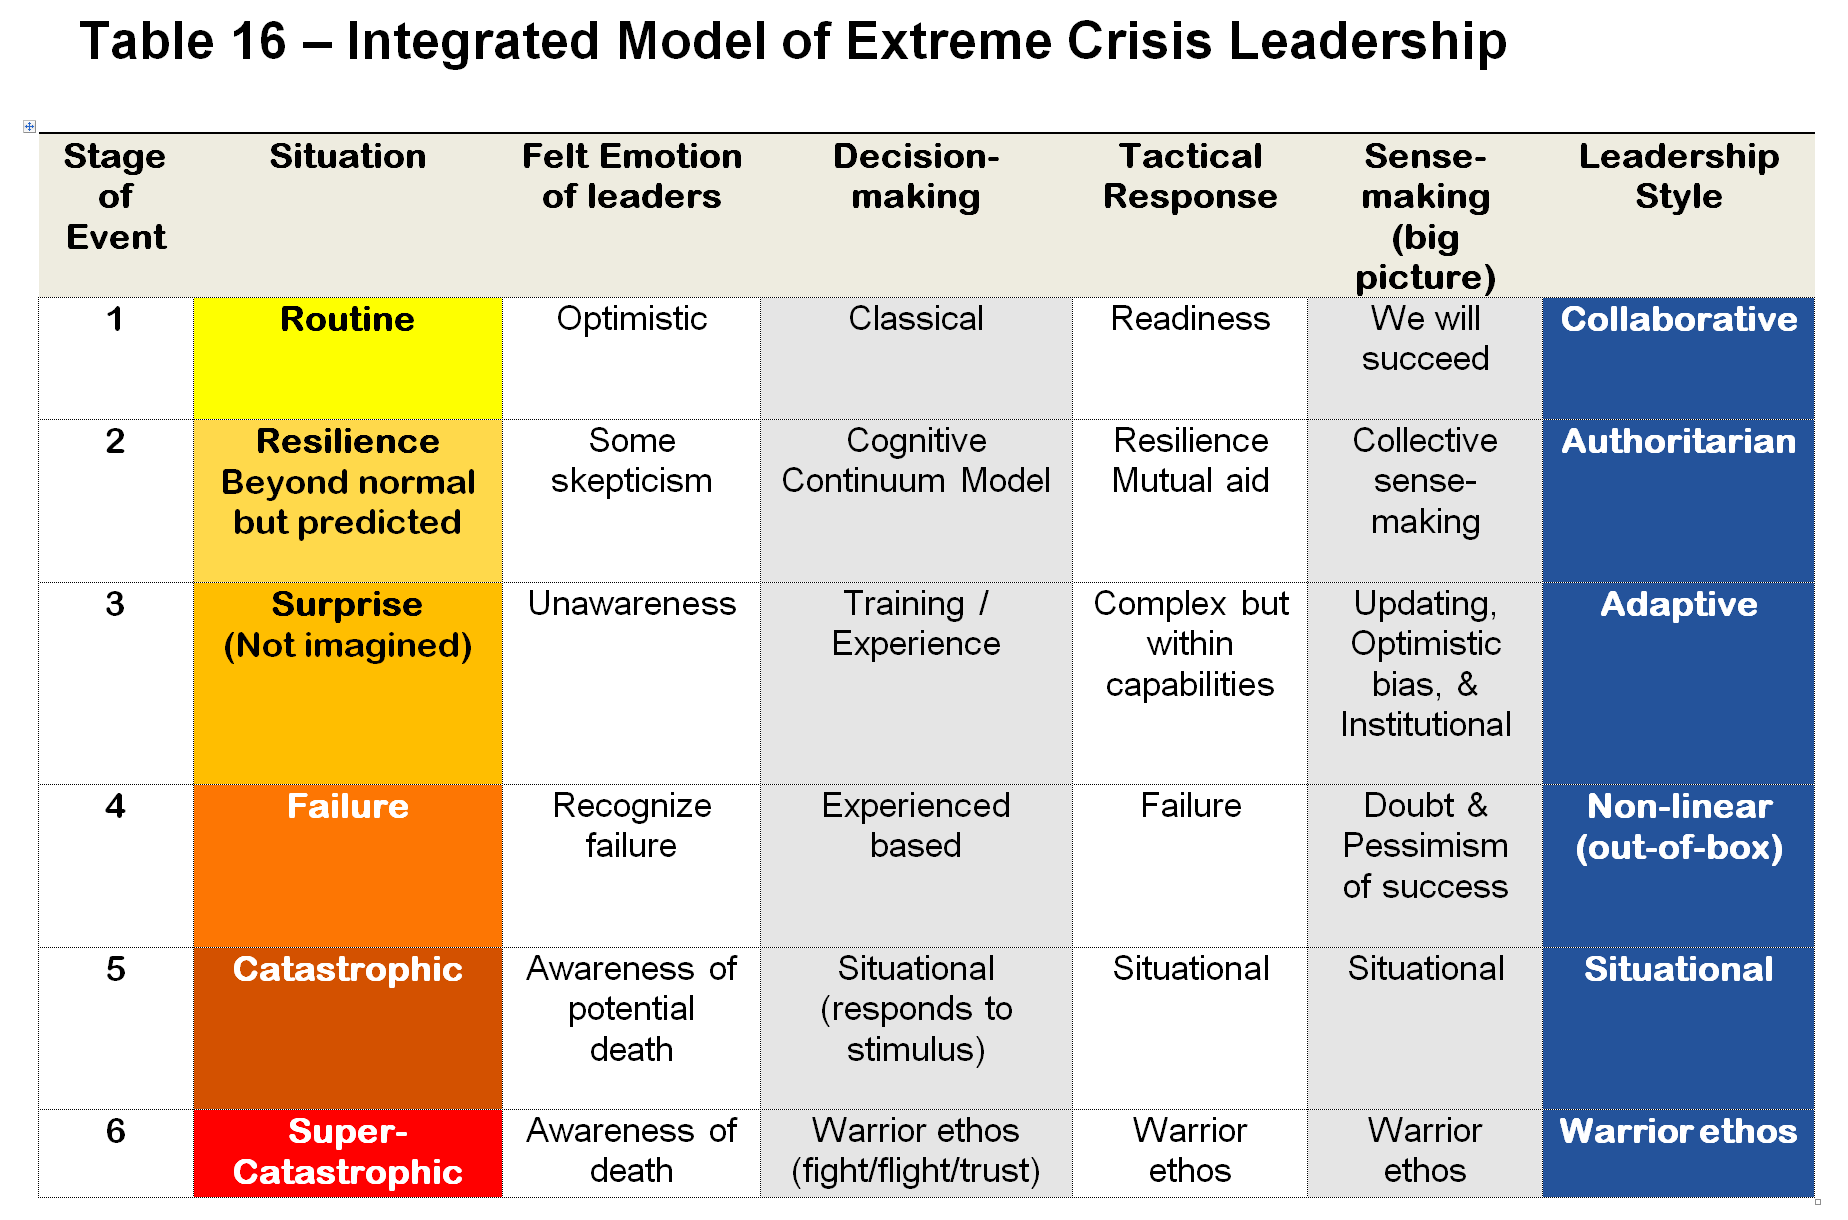 Table_16_Revised__Dr_Charles_Casto_on_Extreme_Crisis_Leadership_docx_-_Microsoft_Word